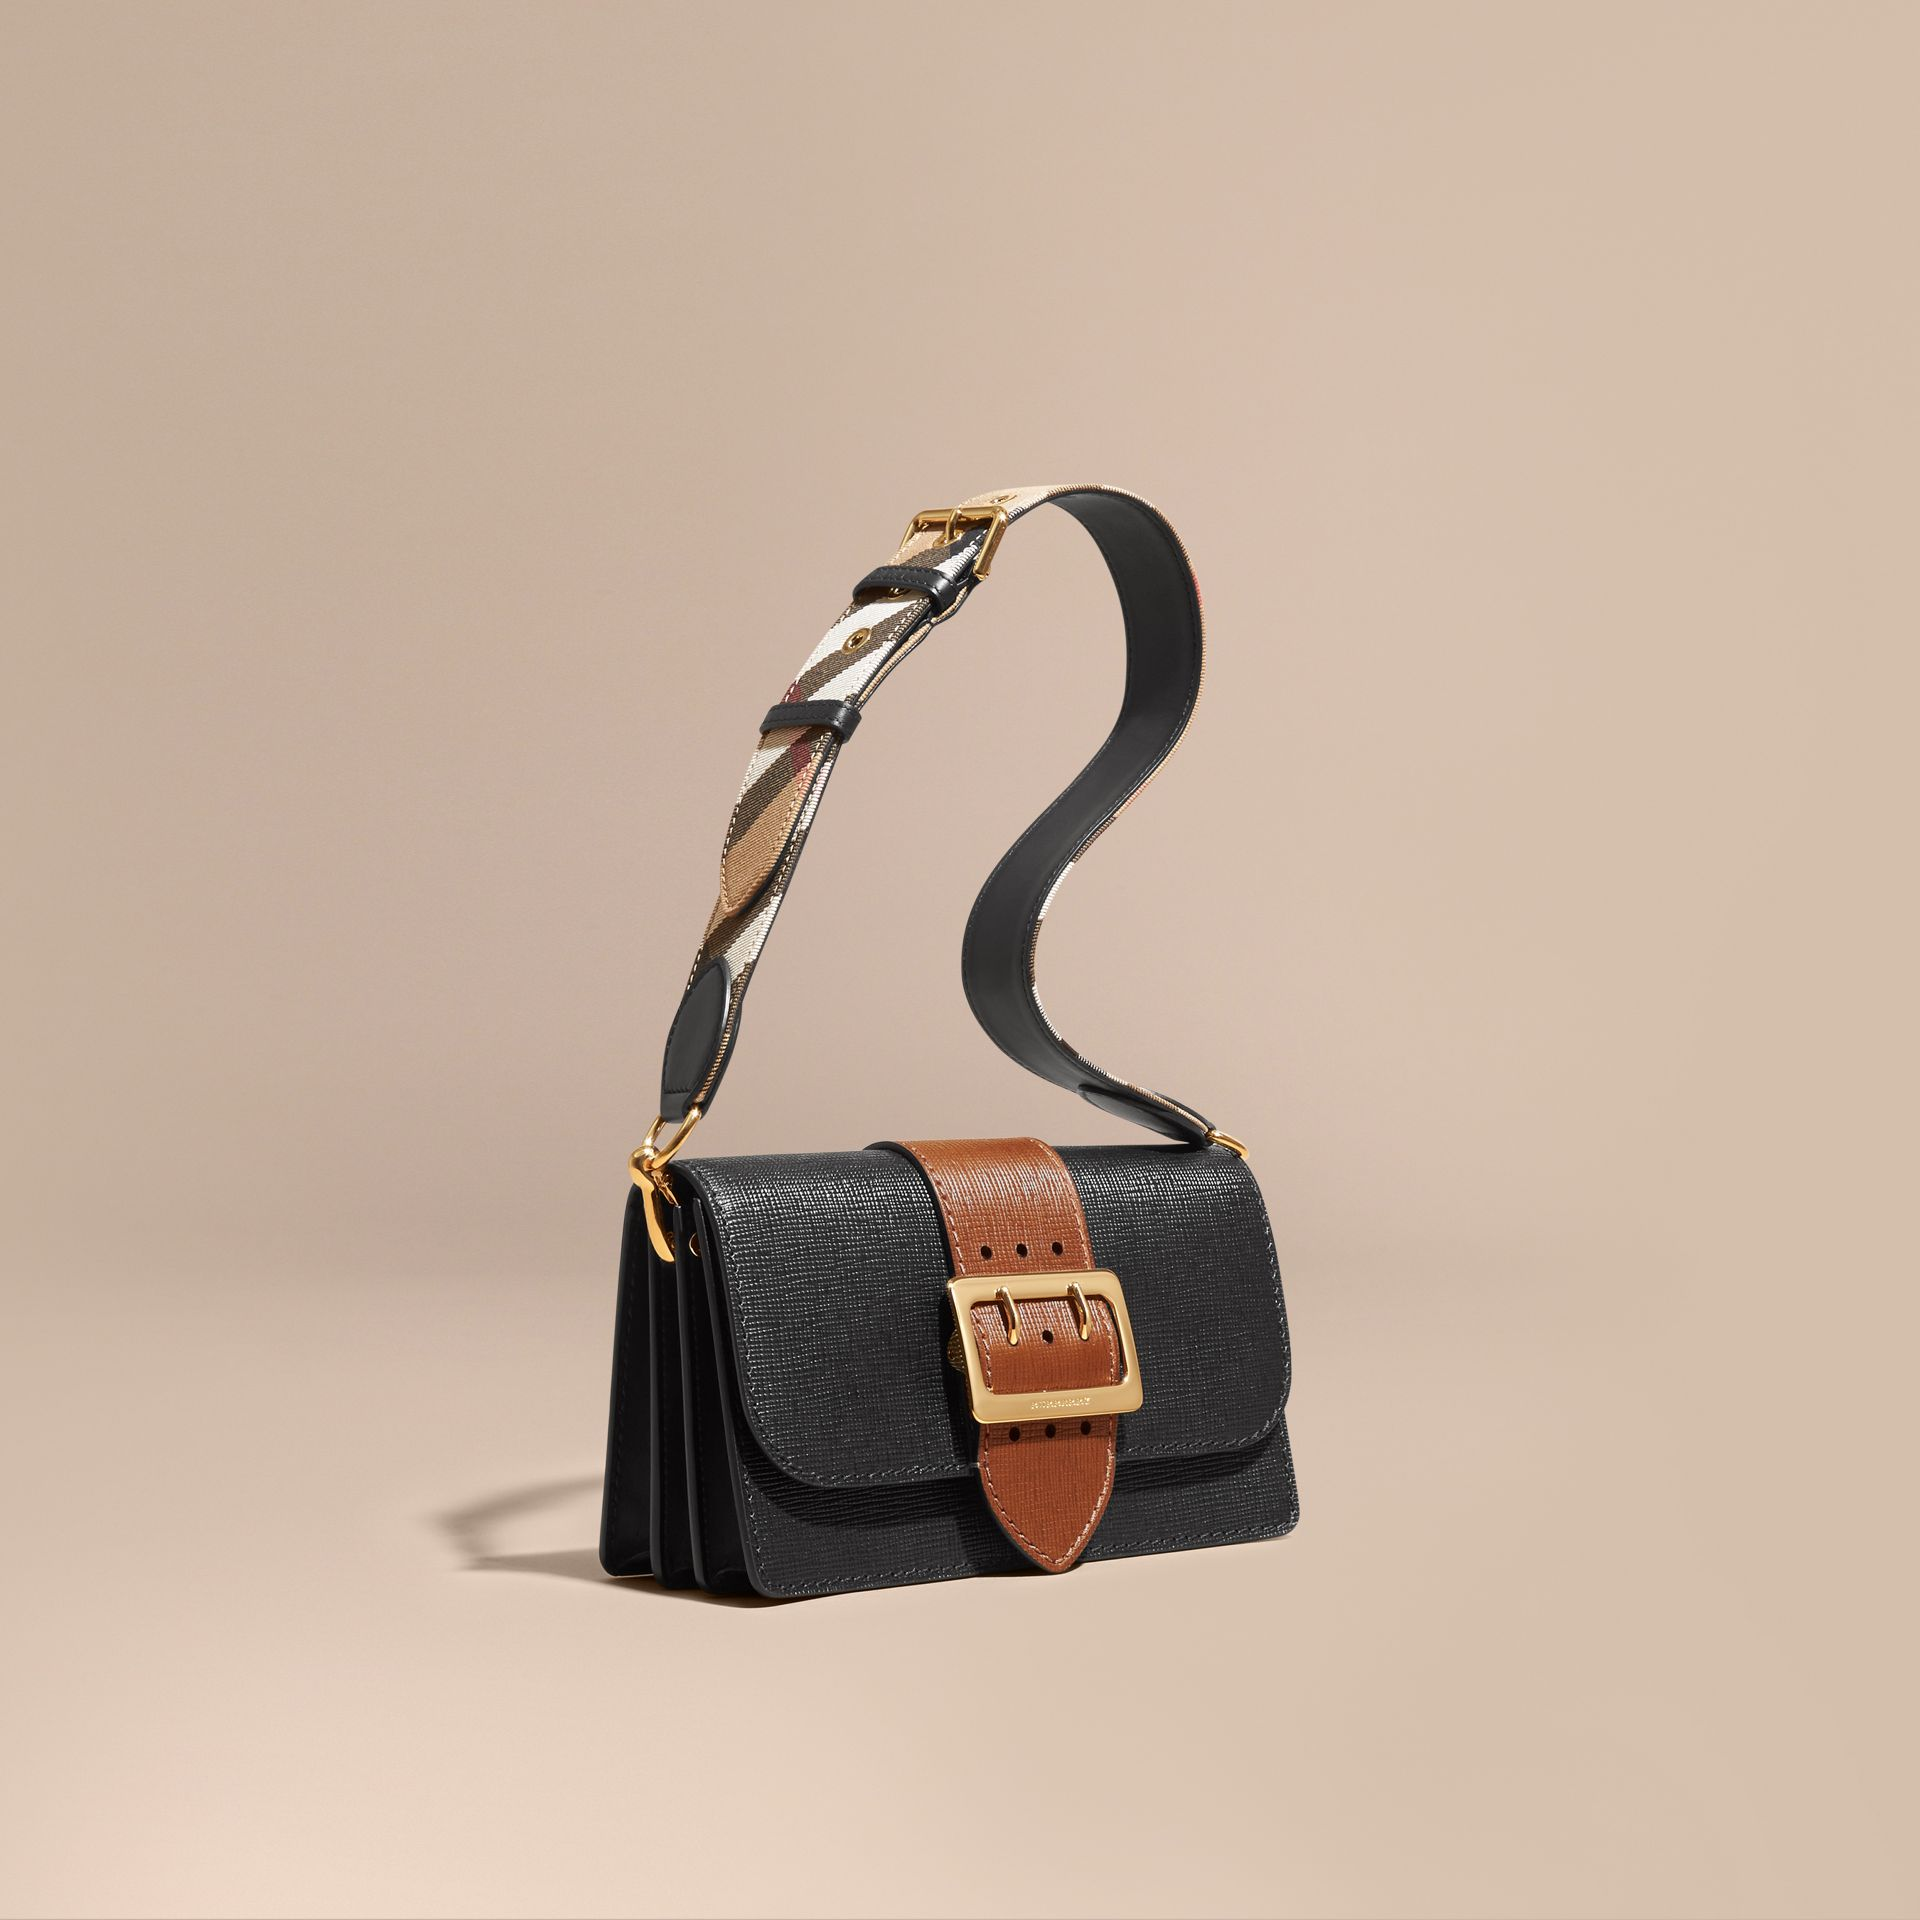 Black/tan The Medium Buckle Bag in Textured Leather Black/tan - gallery image 1